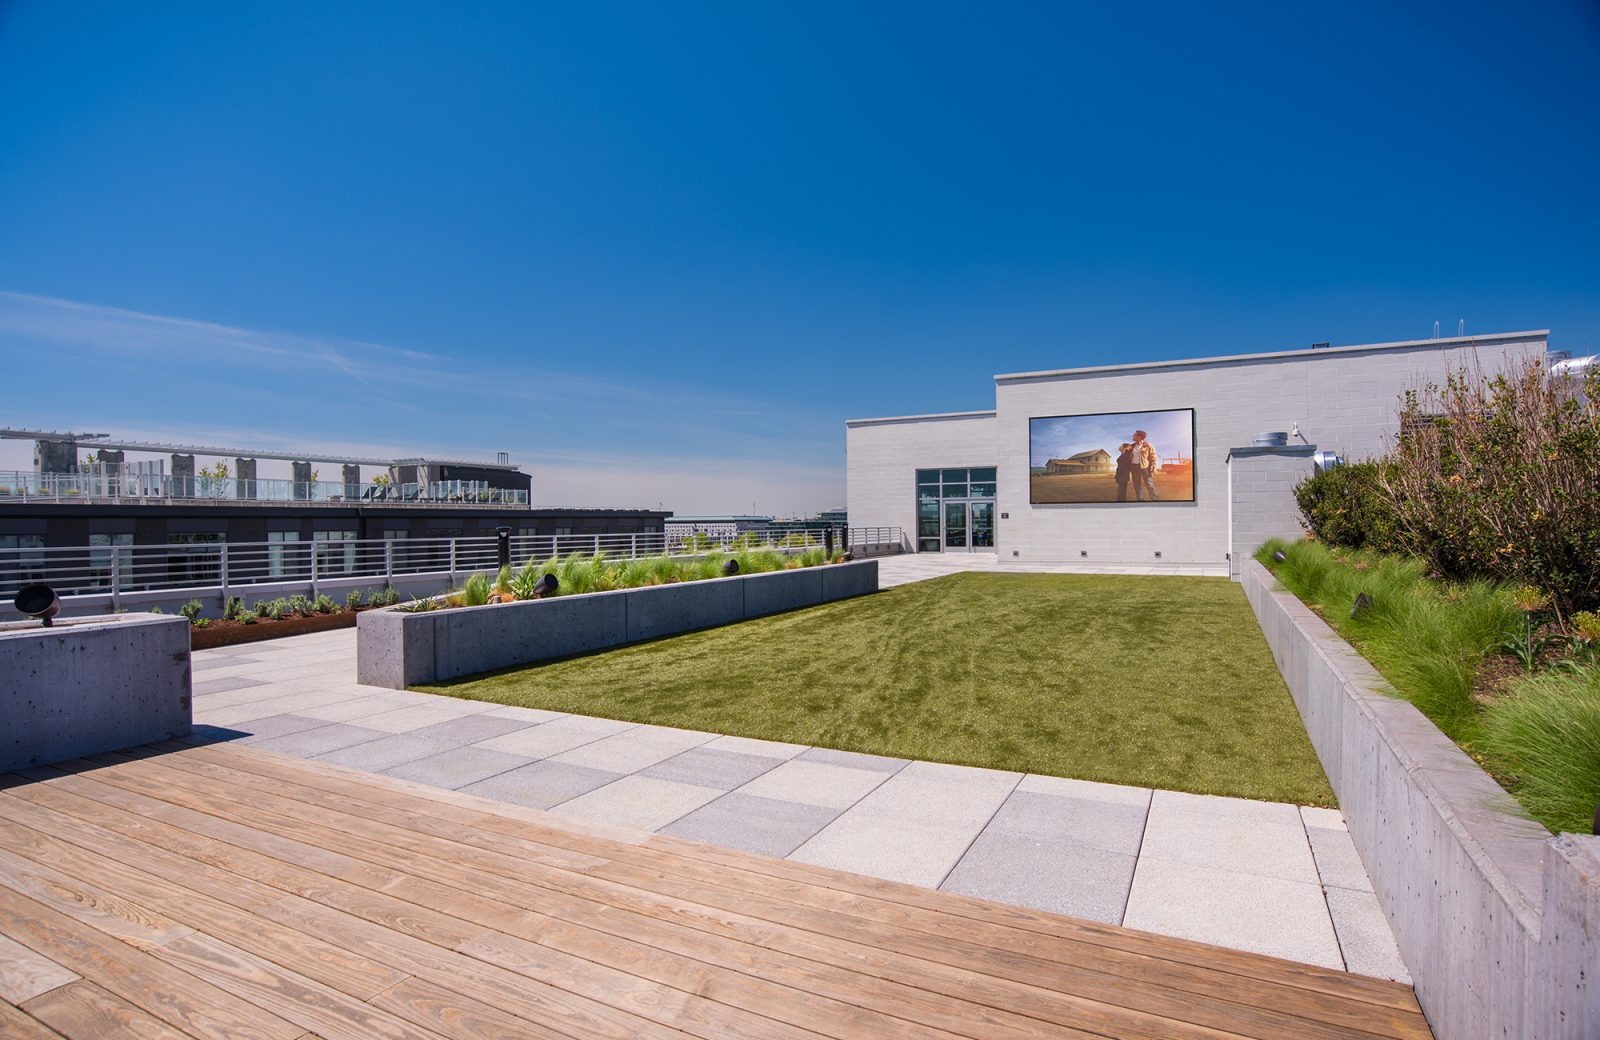 We treat dogs as residents and they will go crazy over our rooftop dog park.